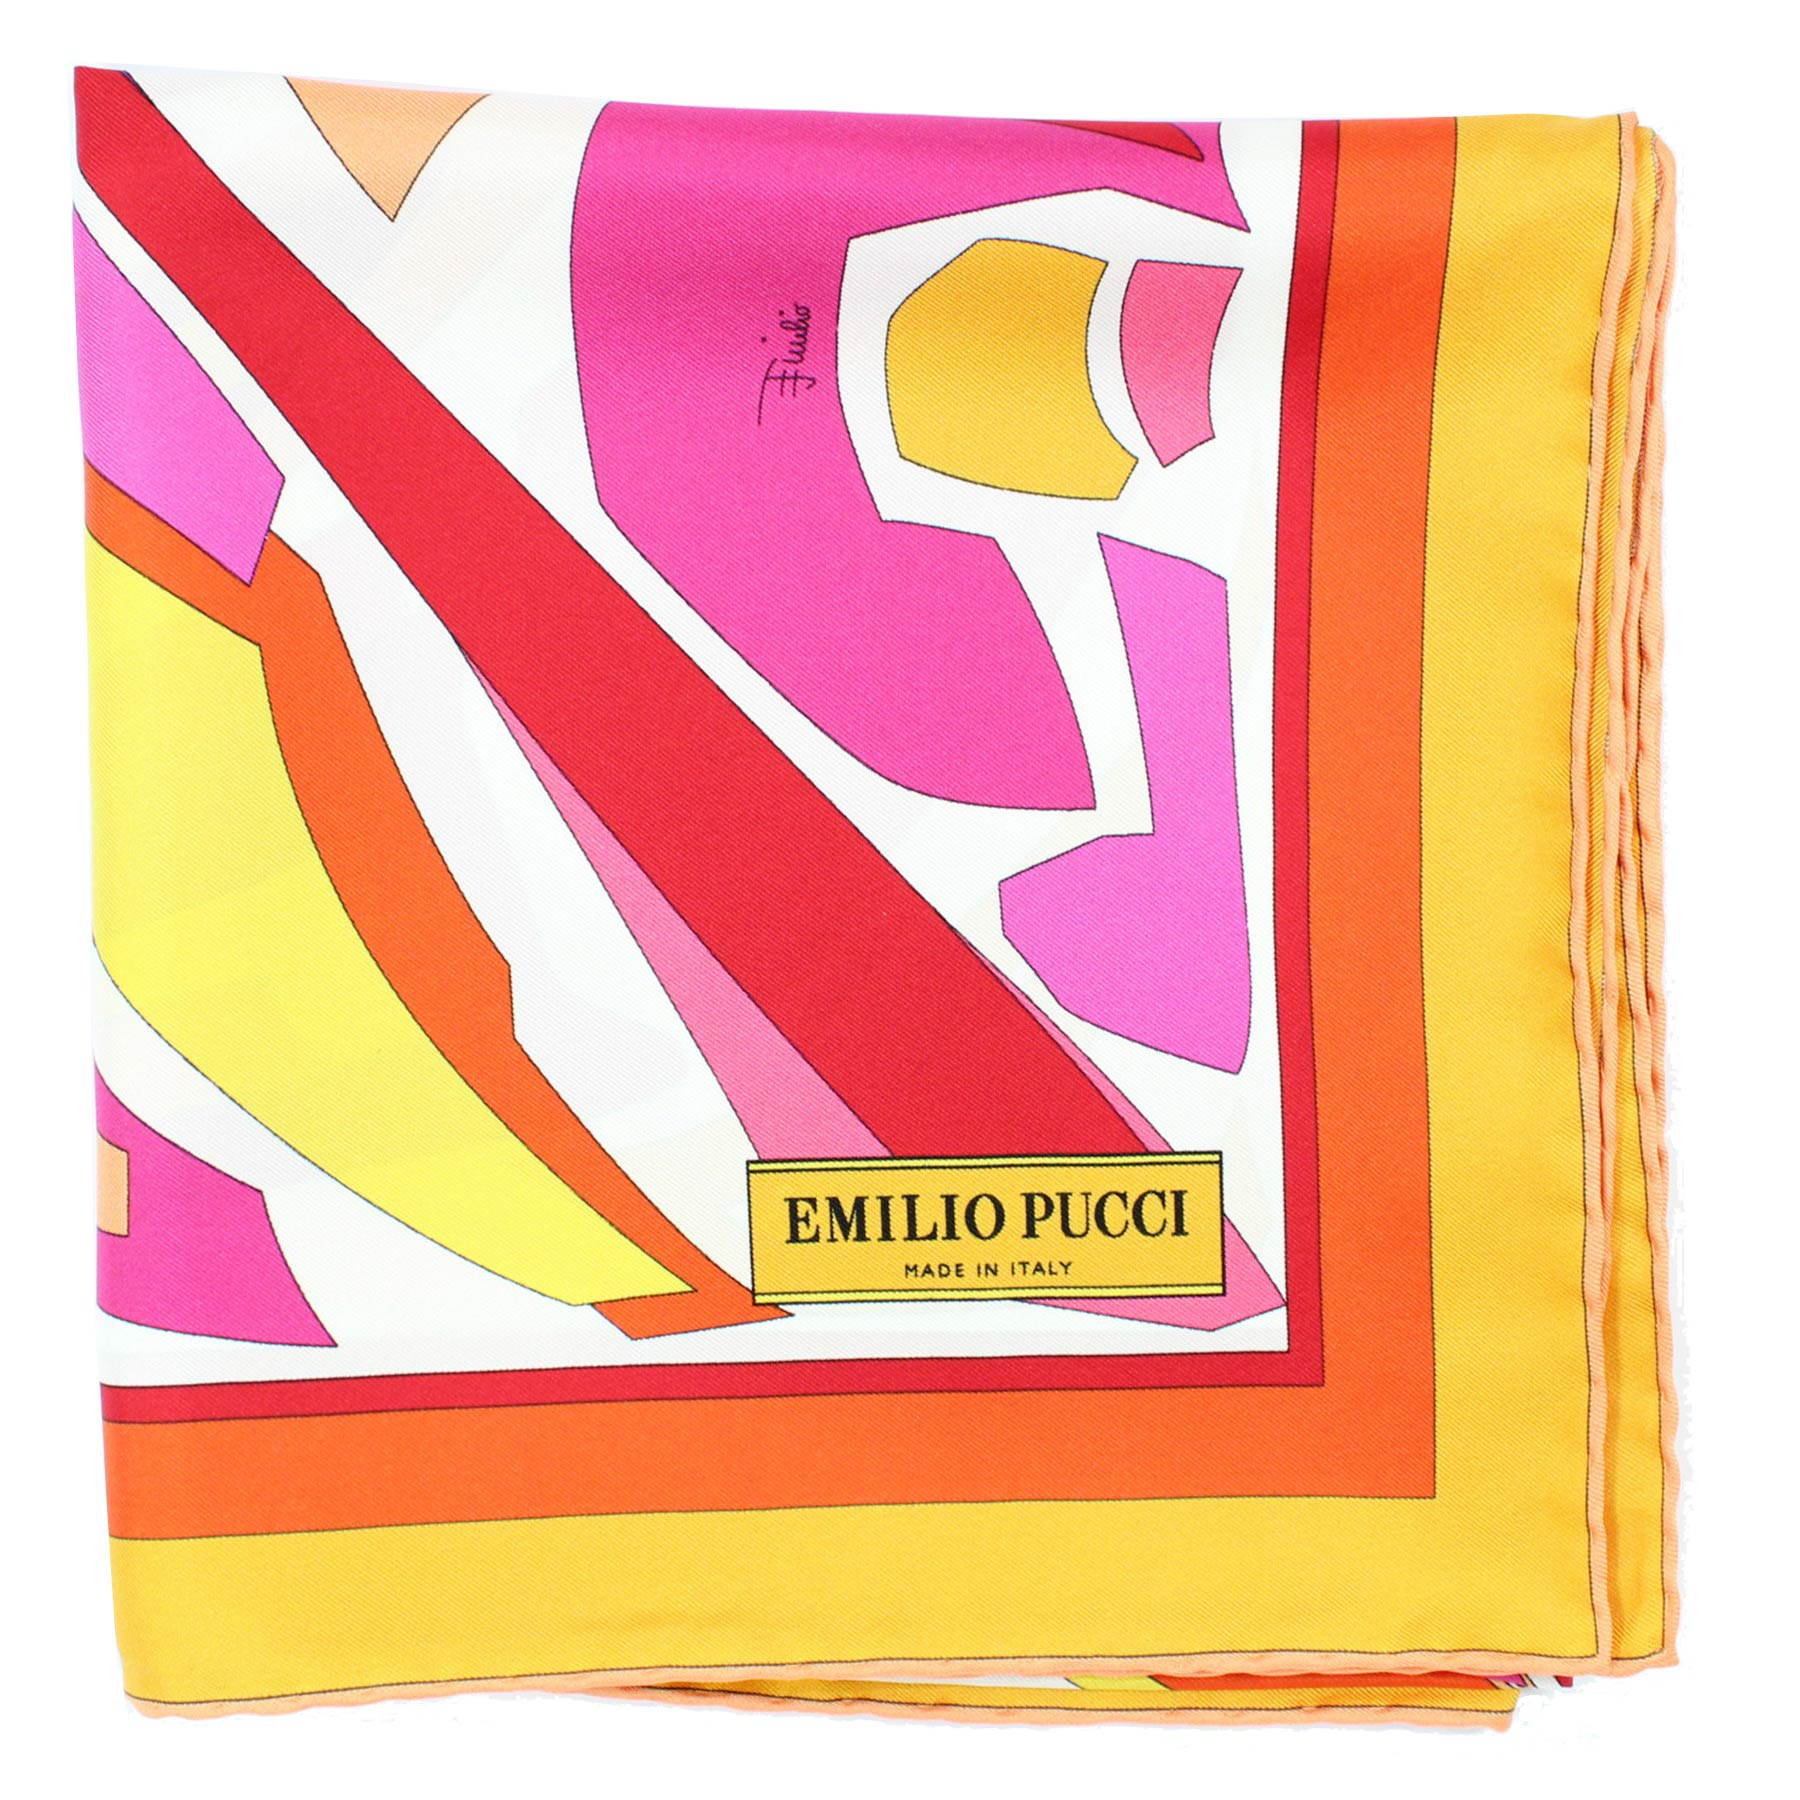 Emilio Pucci Scarf Orange Yellow Pink Design